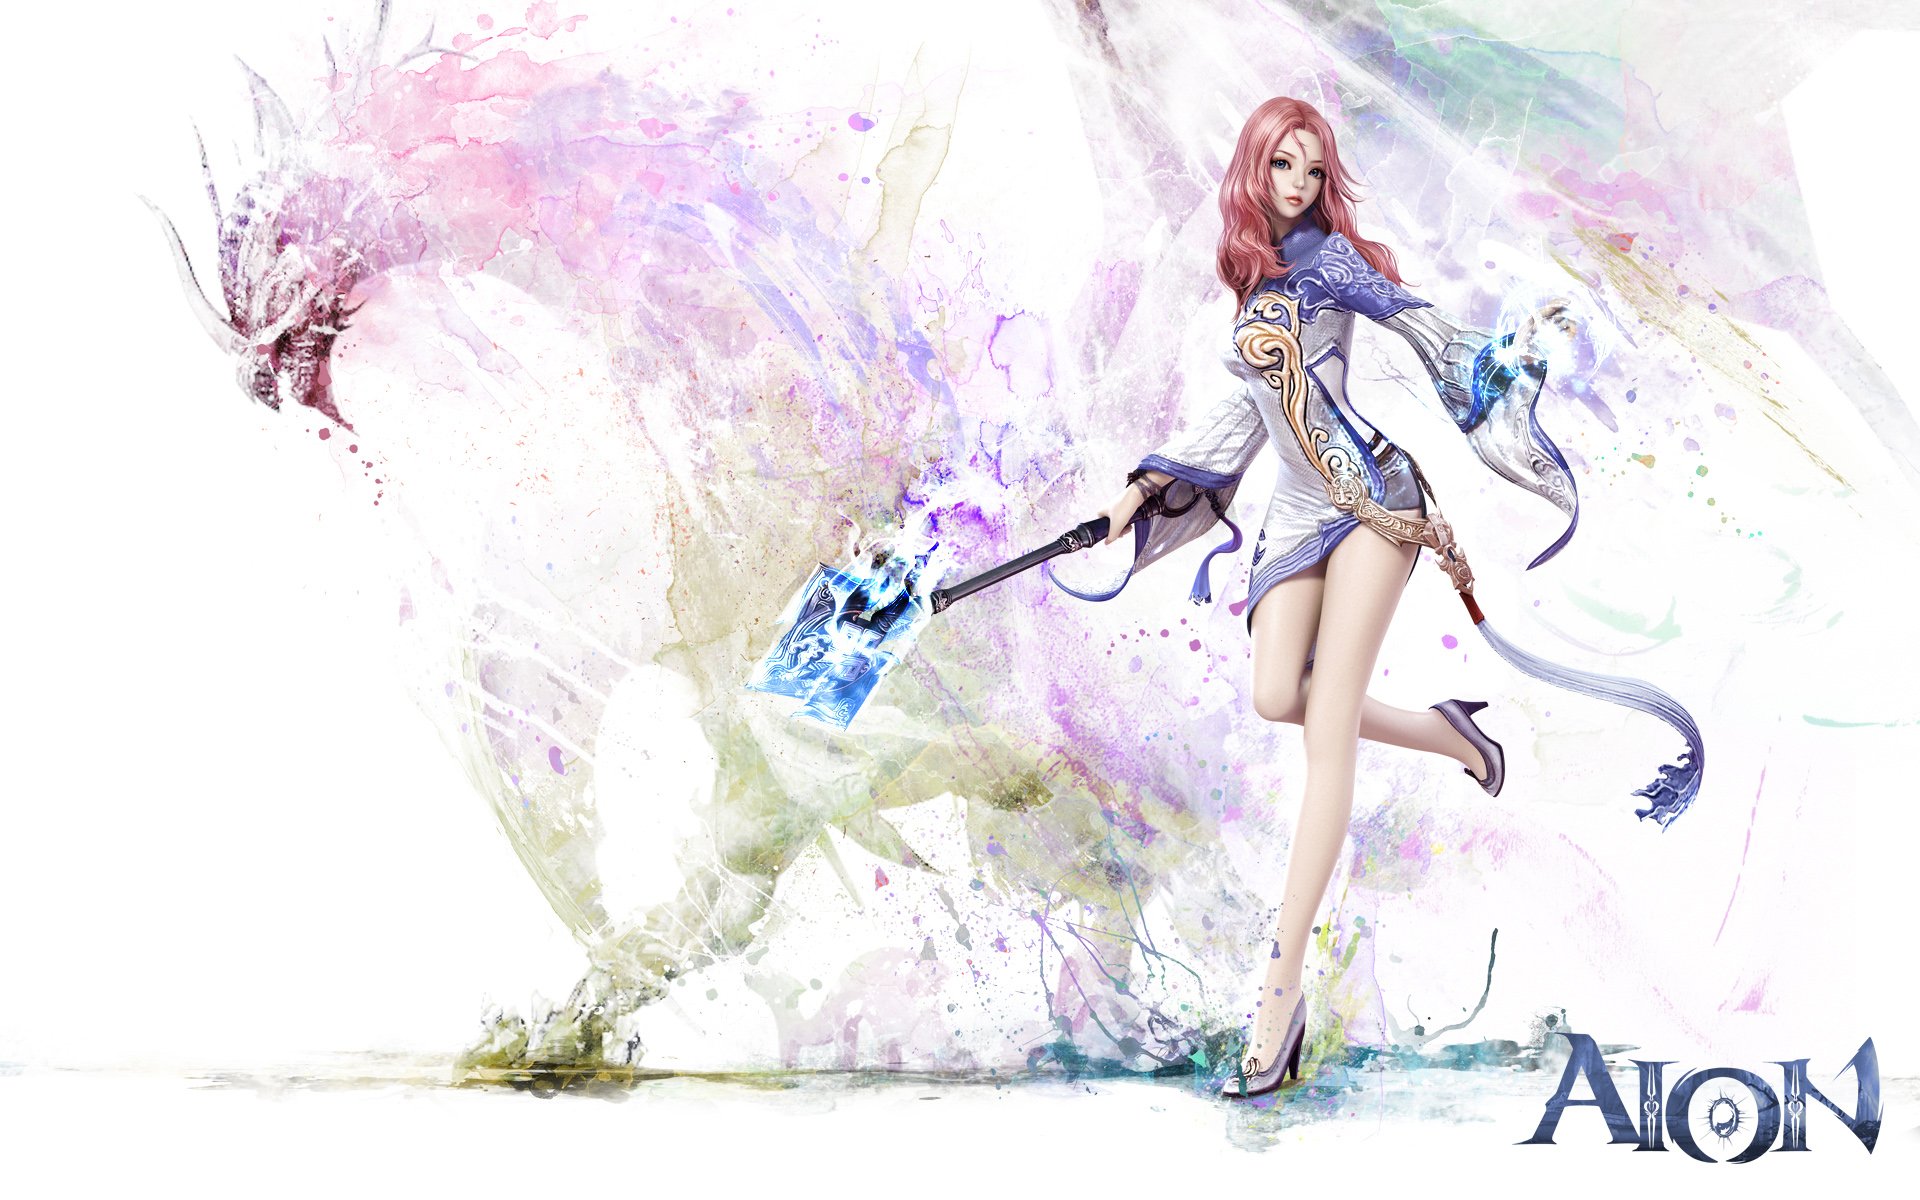 Aion Game Girl 752.3 Kb